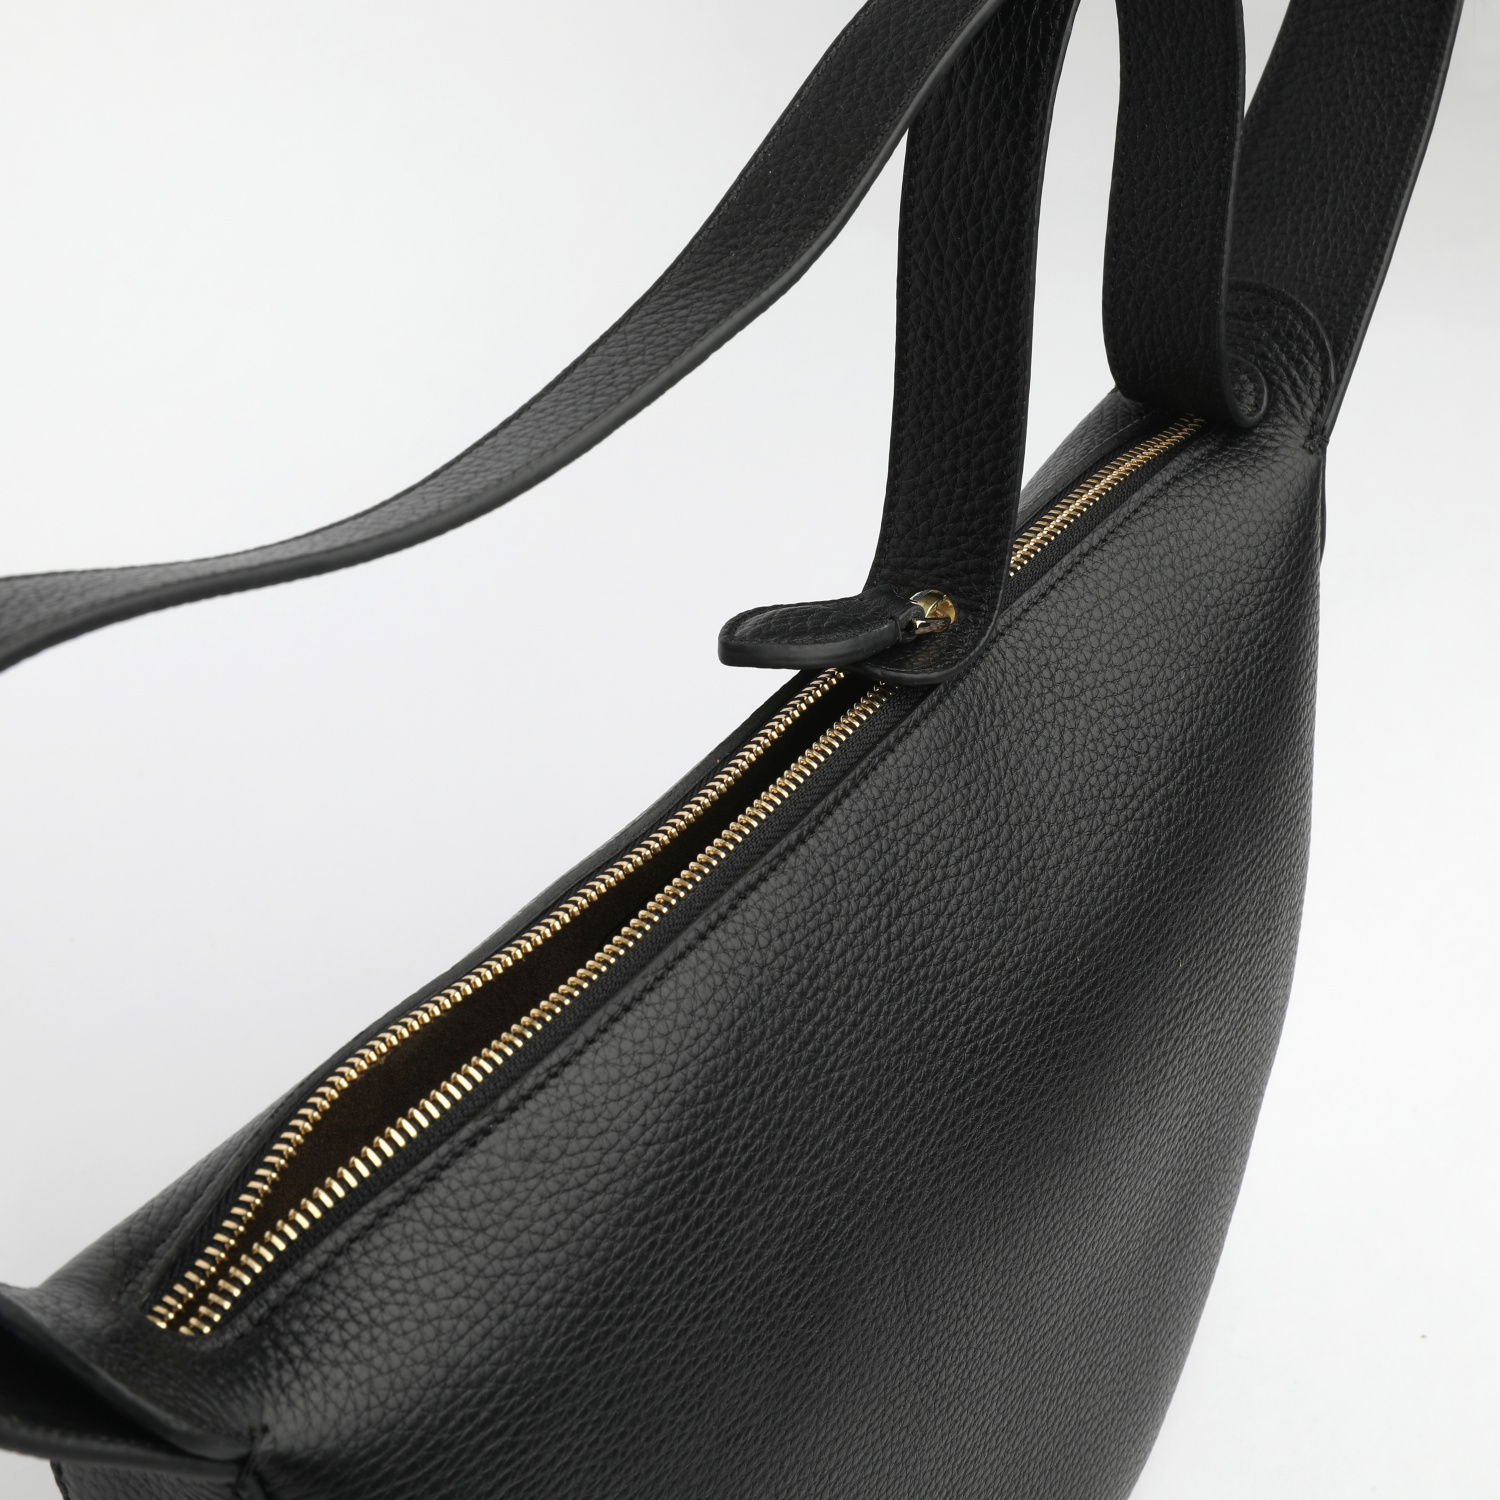 MONA HALF-MOON BAG IN GRAINED CALF LEATHER